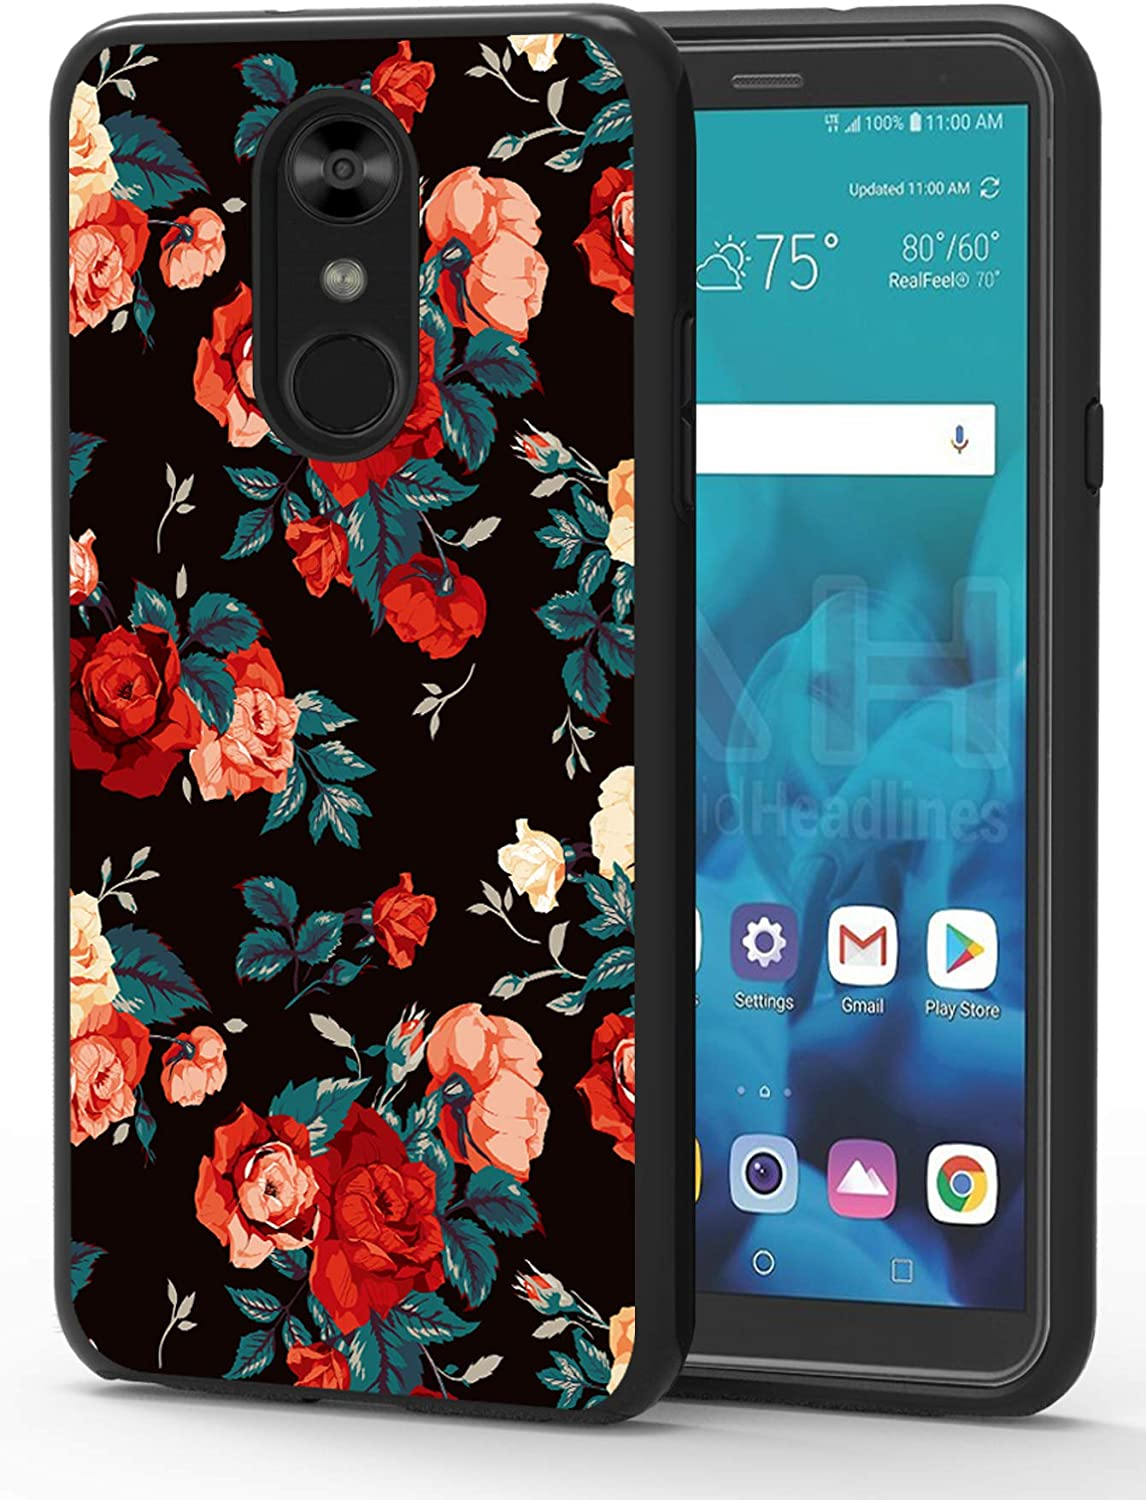 ShinyMax LG Stylo 4 Phone Case,LG Stylo 4 Plus Case,LG Q Stylus Case, Hybrid Dual Layer Armor Protective Cover Anti-Scratch Shockproof Cute Case with Rose Design for Women and Girls Flowers